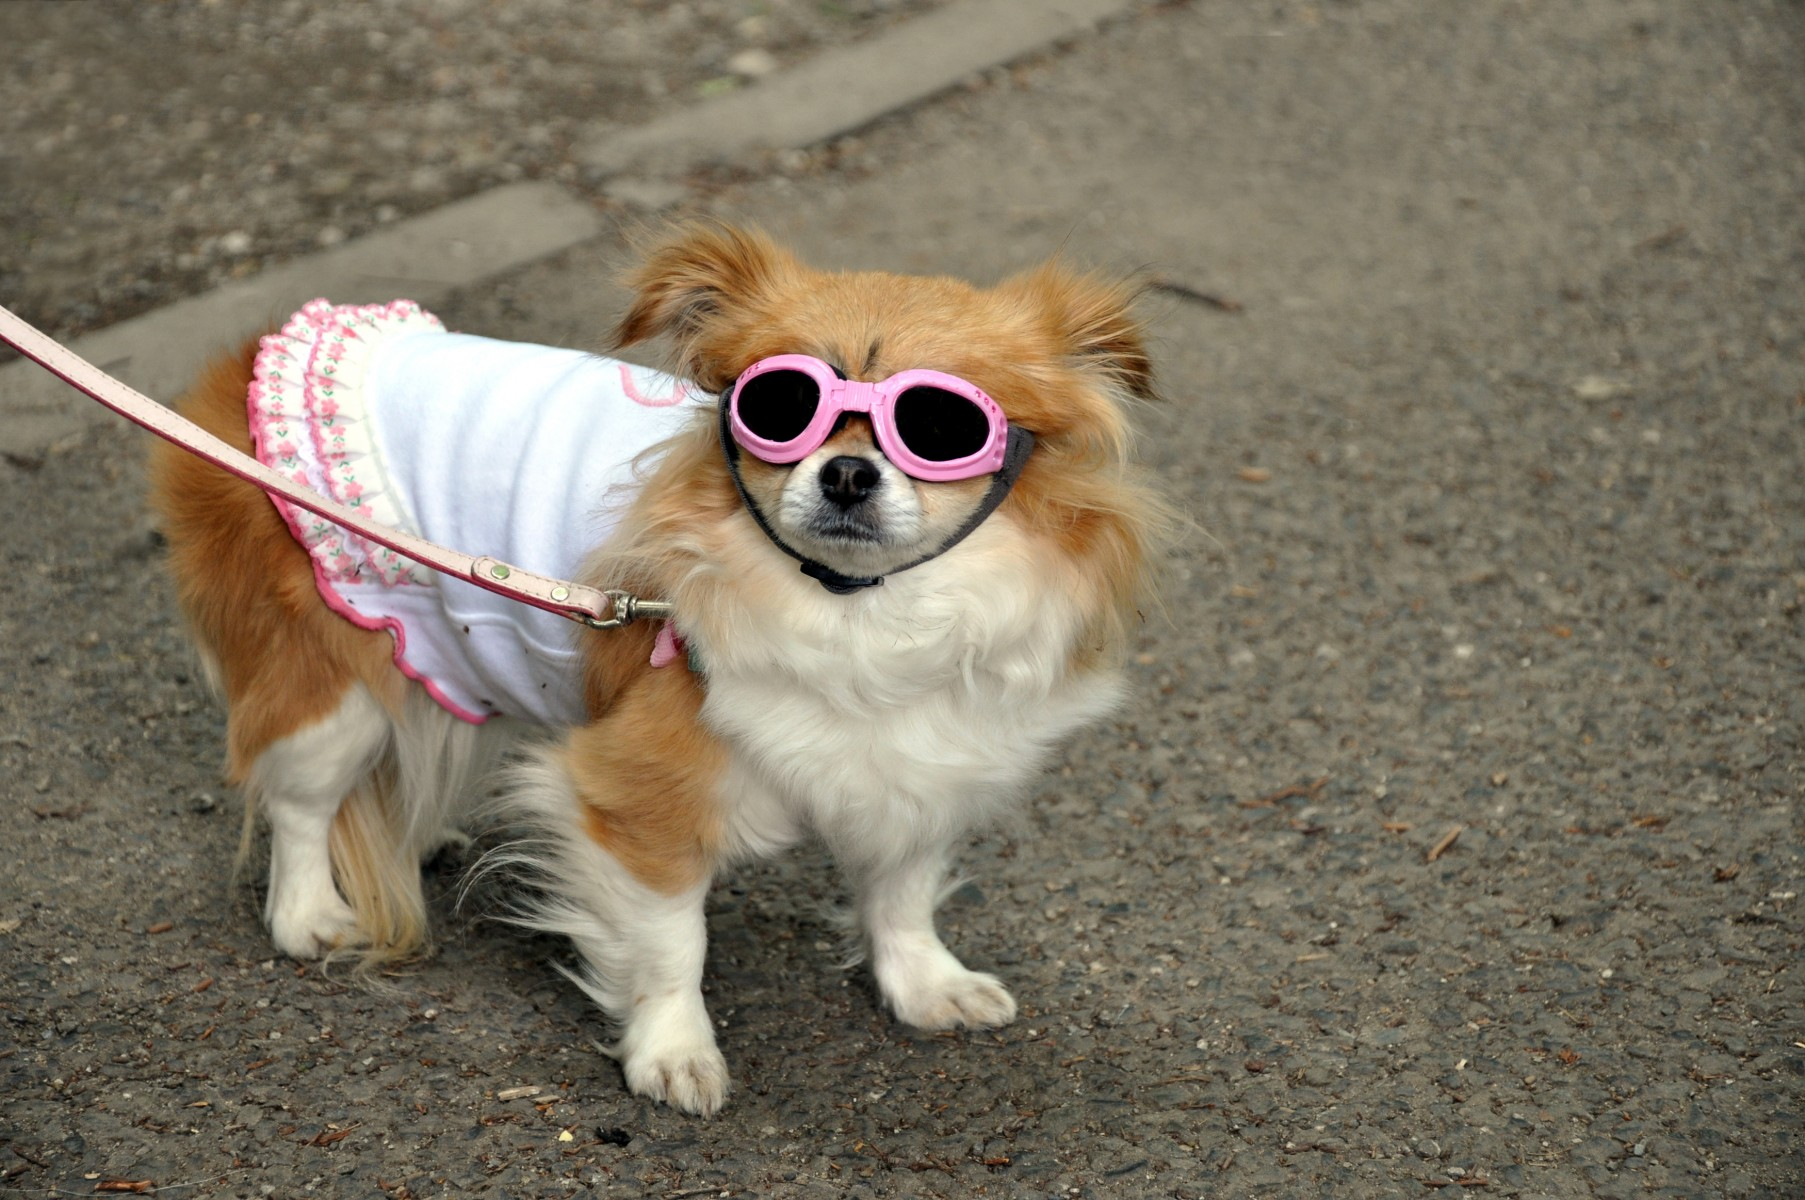 Dog with clothes and pink sunglasses, Tokyo, Japan